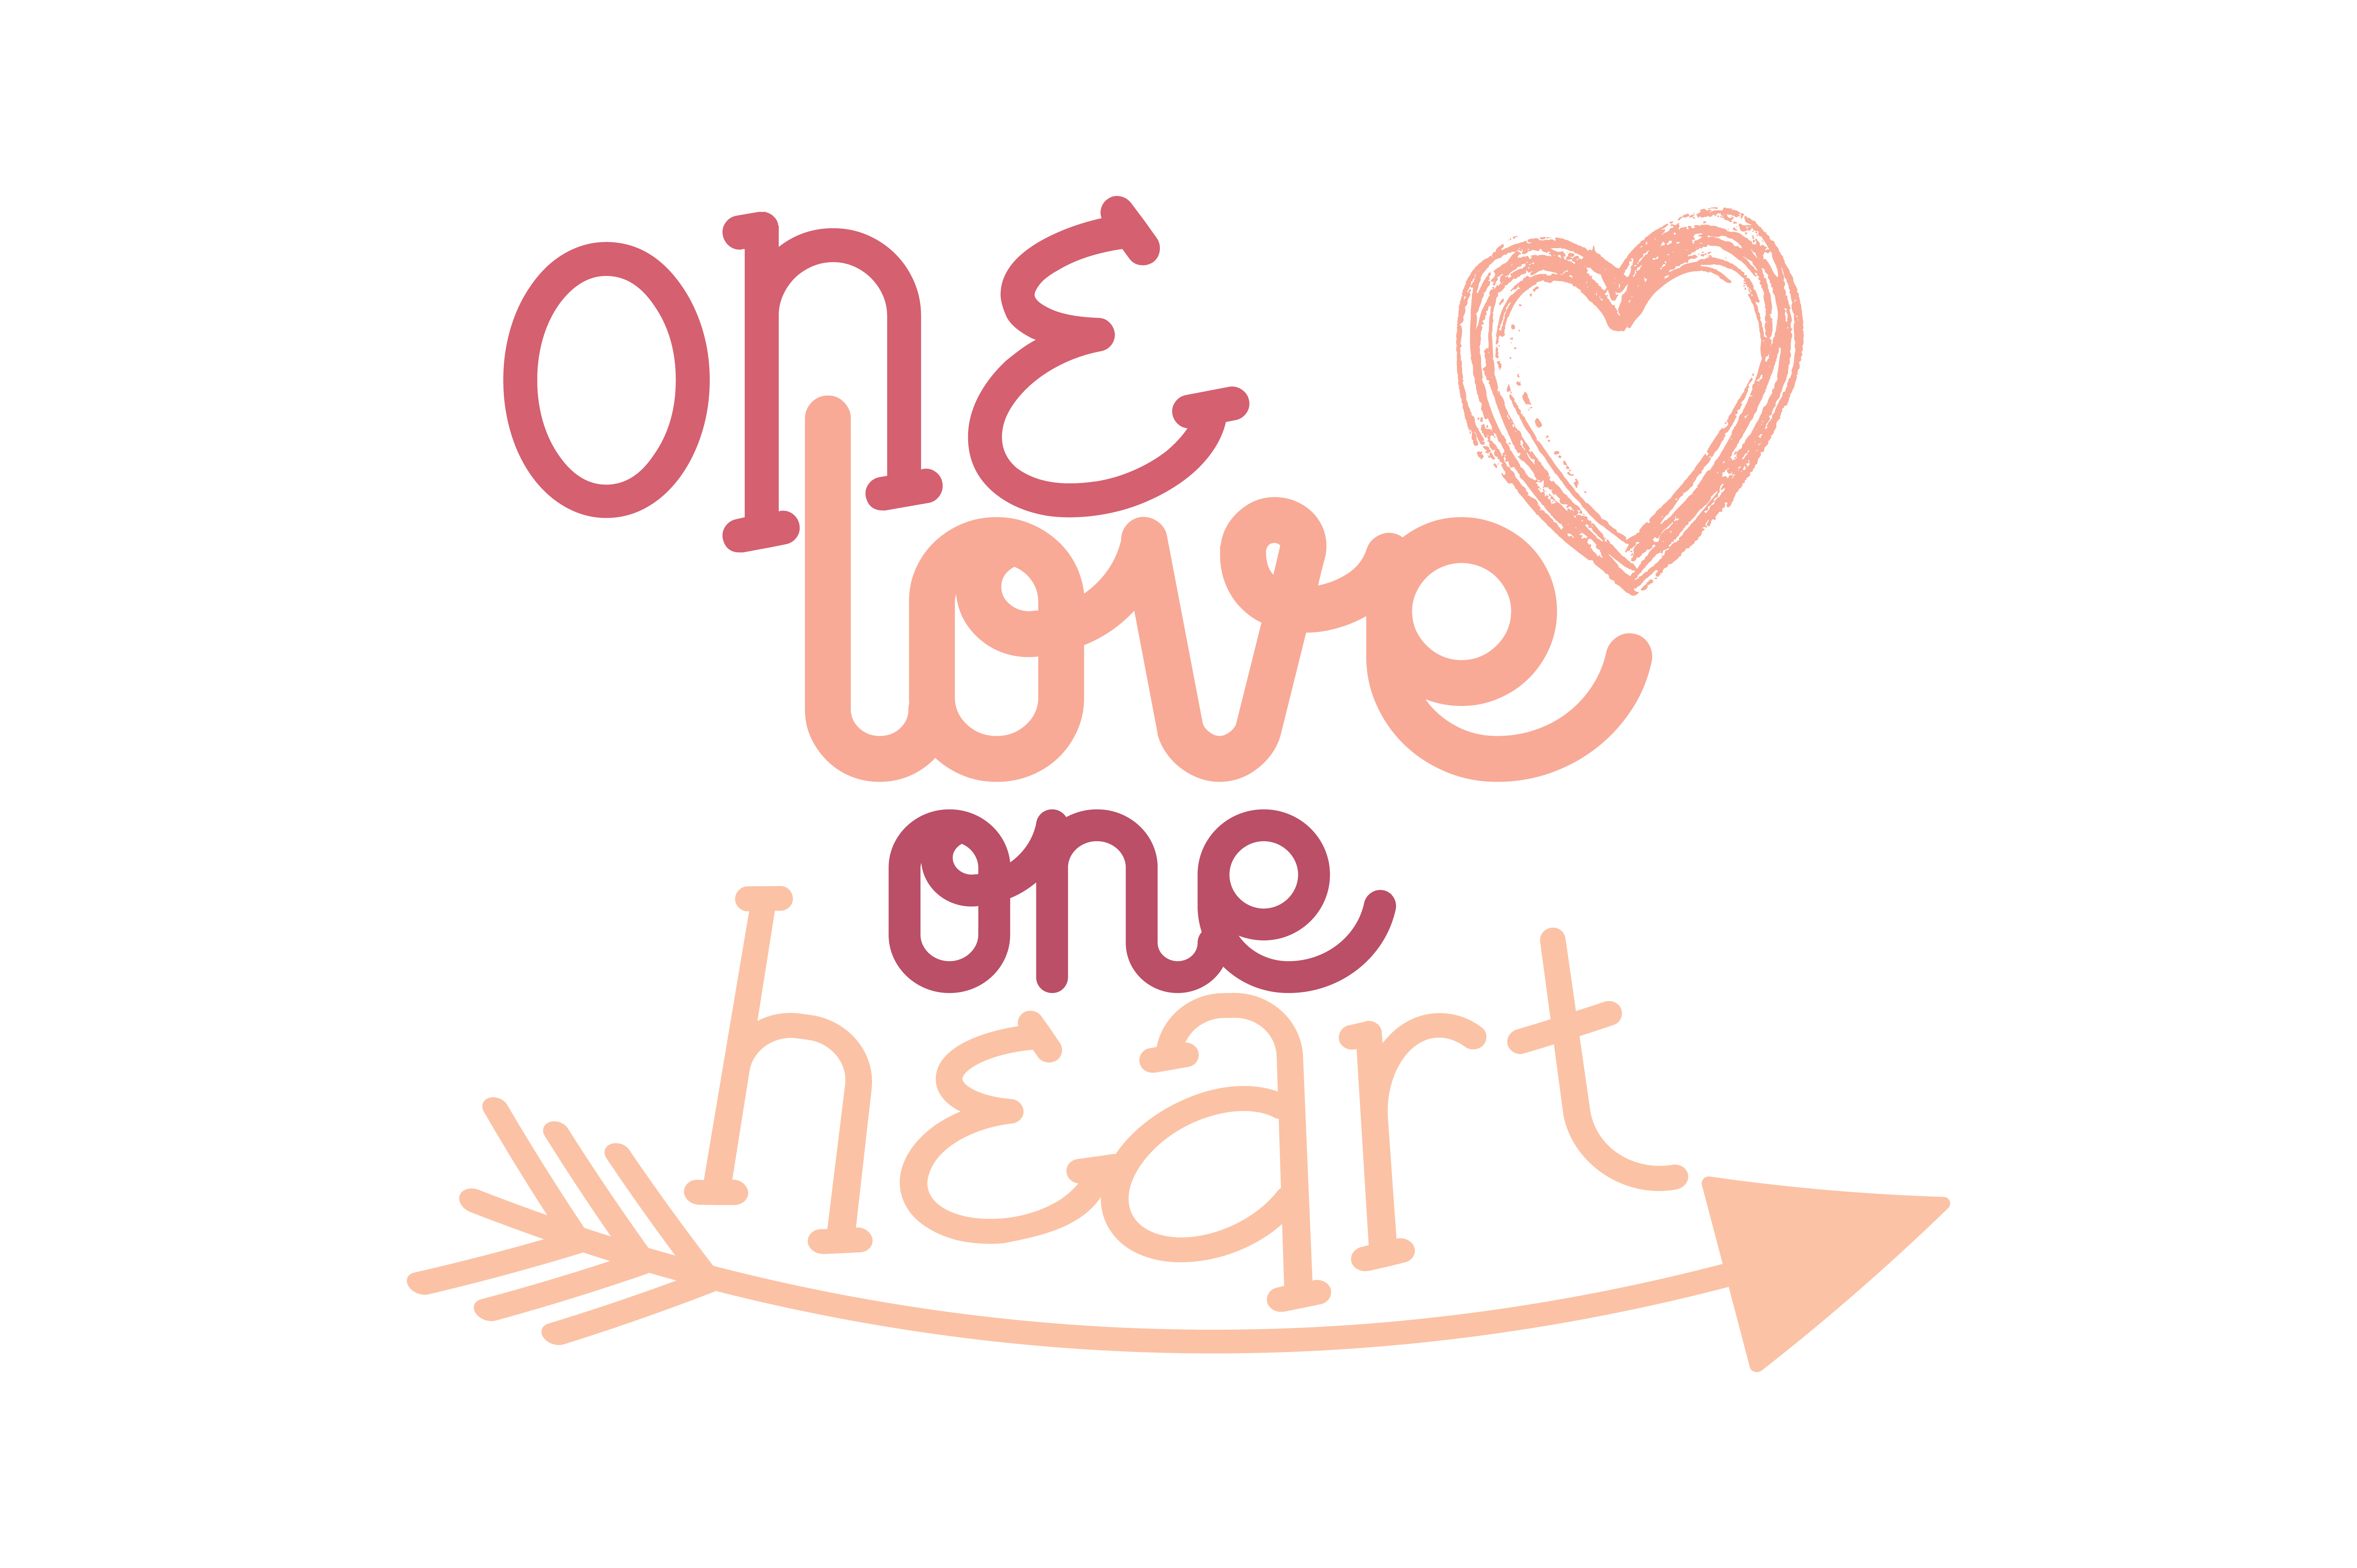 Download Free One Love One Heart Quote Svg Cut Graphic By Thelucky Creative for Cricut Explore, Silhouette and other cutting machines.